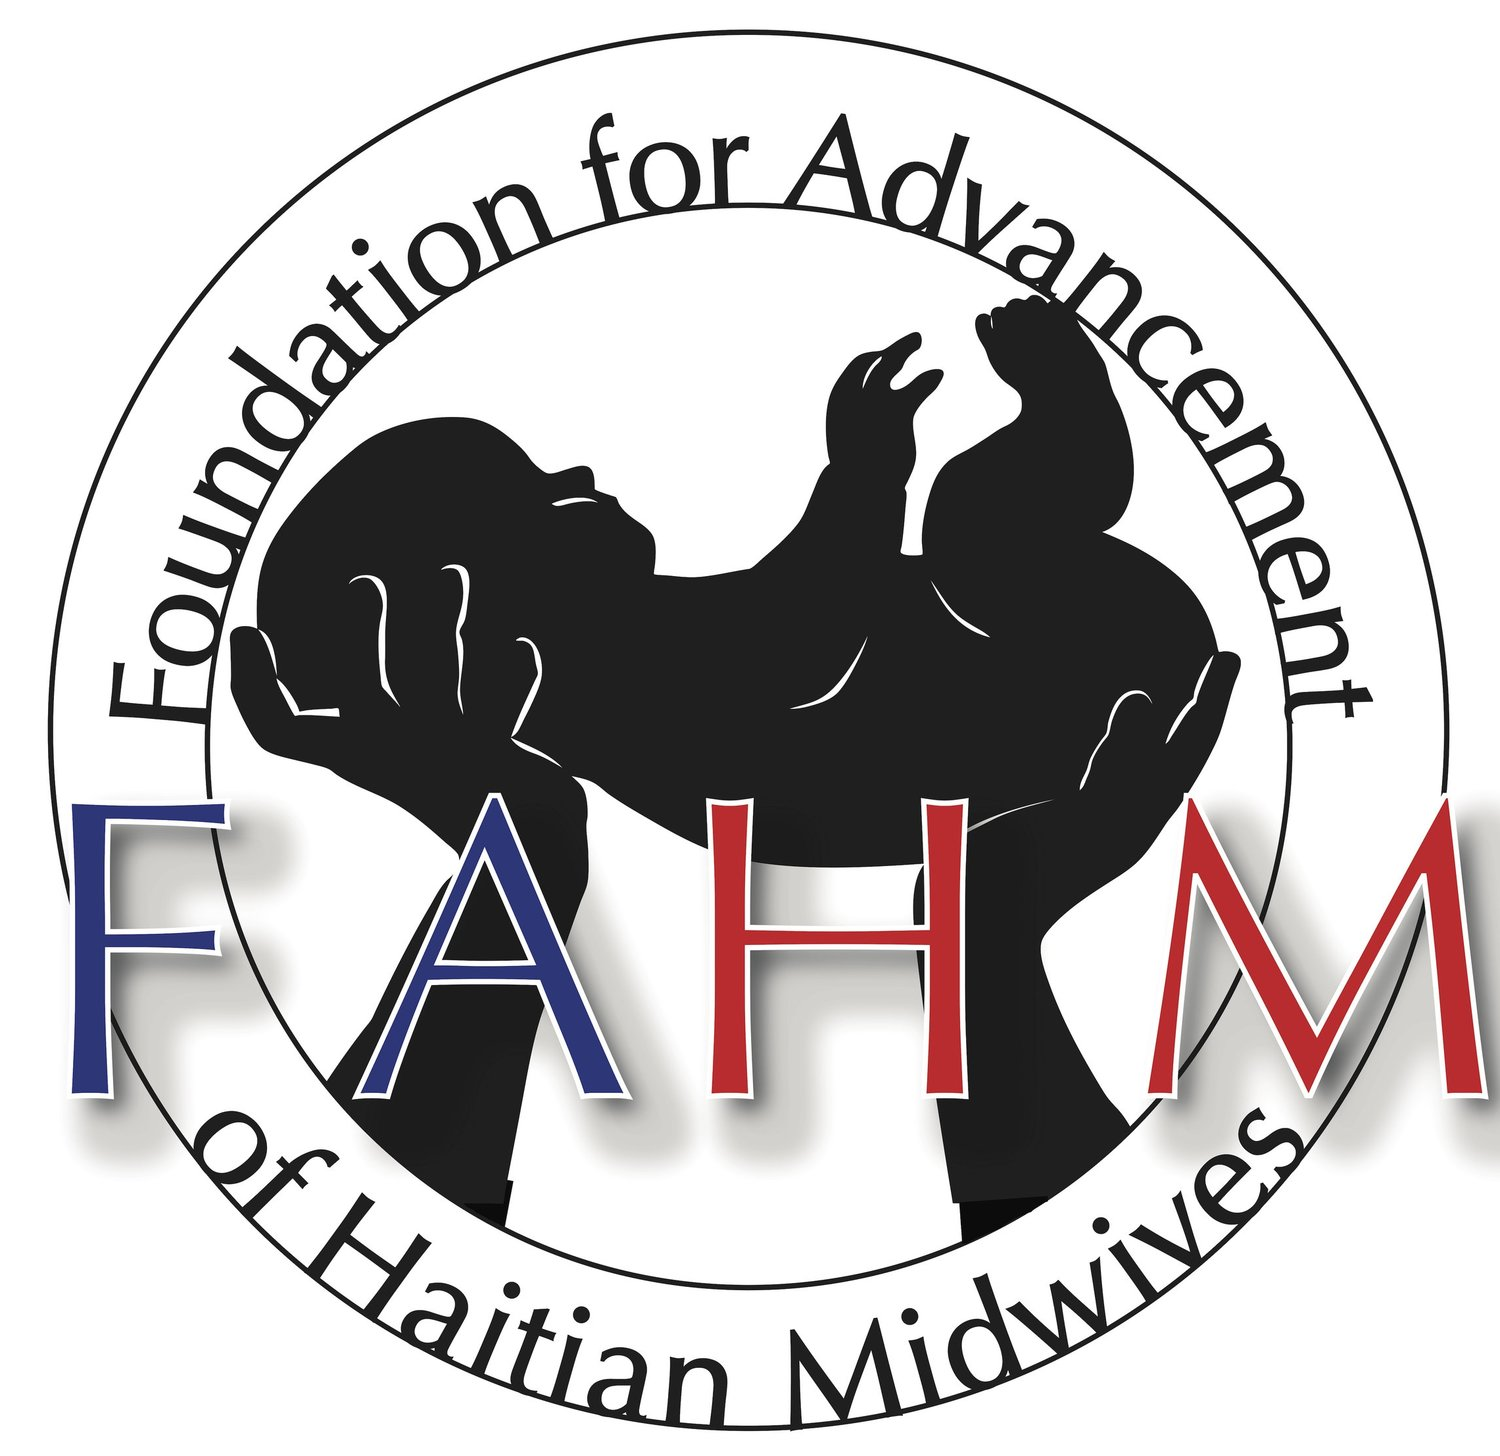 Foundation for Advancement of Haitian Midwives